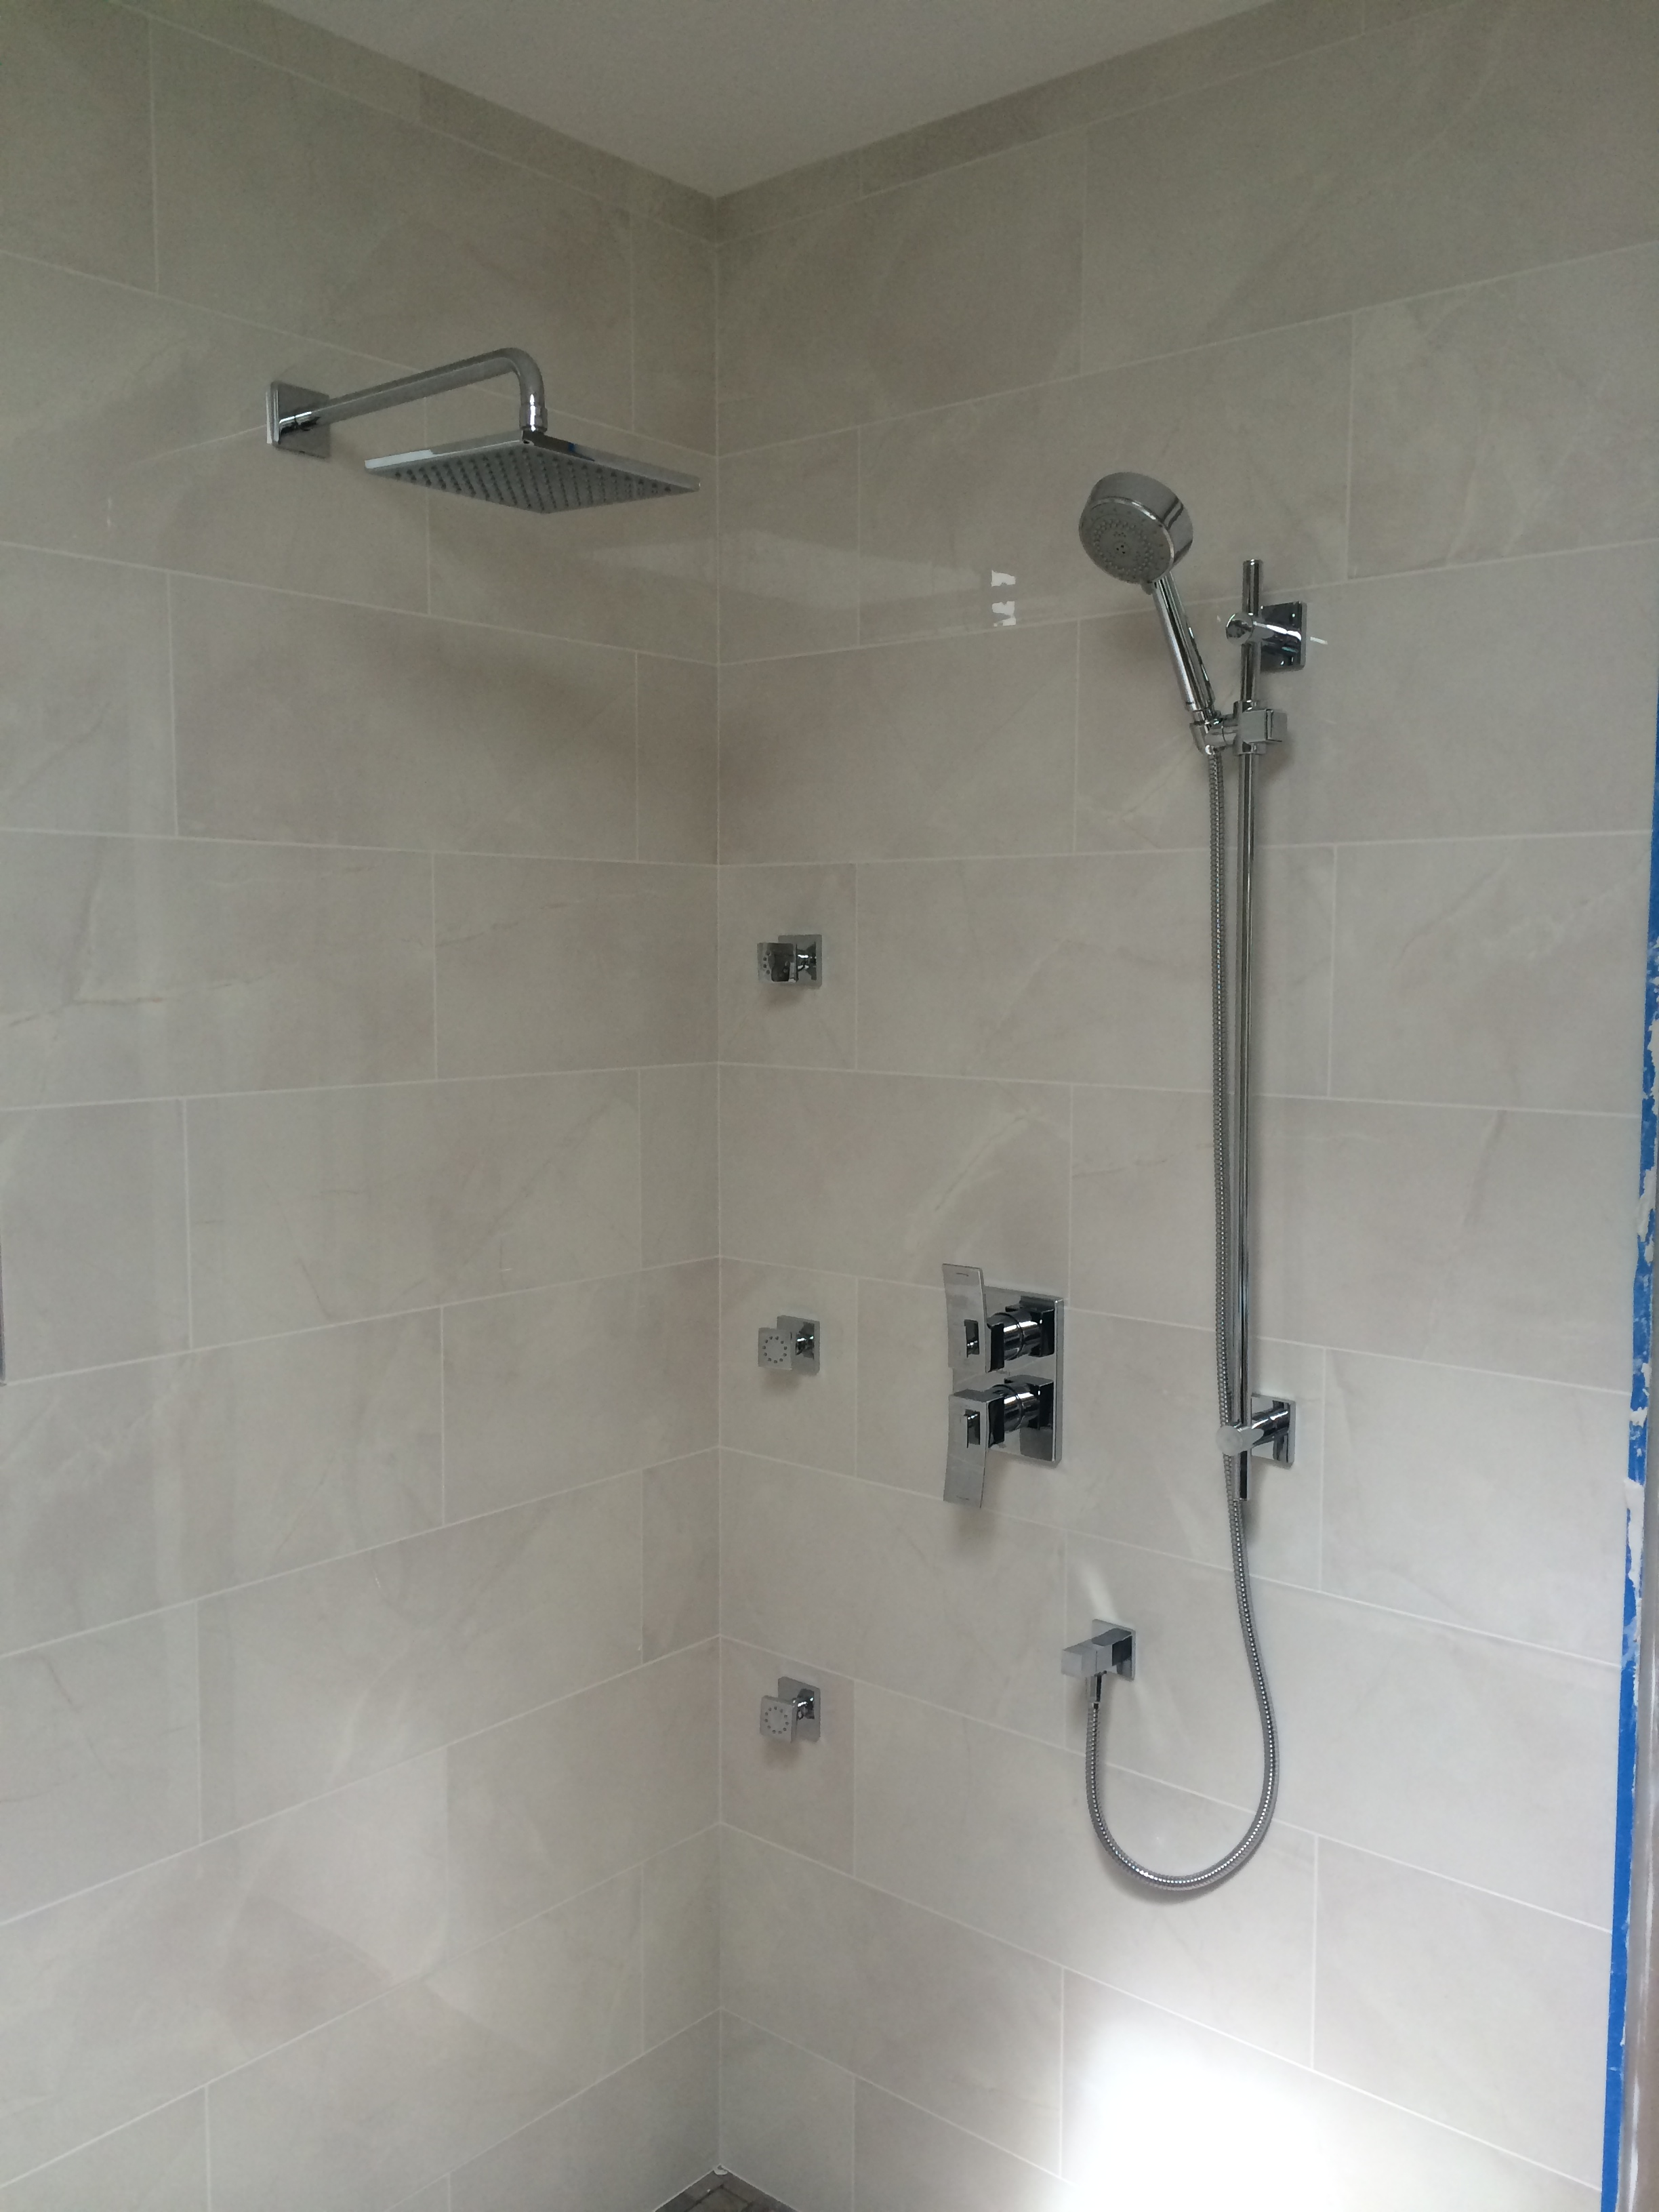 plumbing riobel showers installed body finish shower ltd chrome rain drains and callaway spray